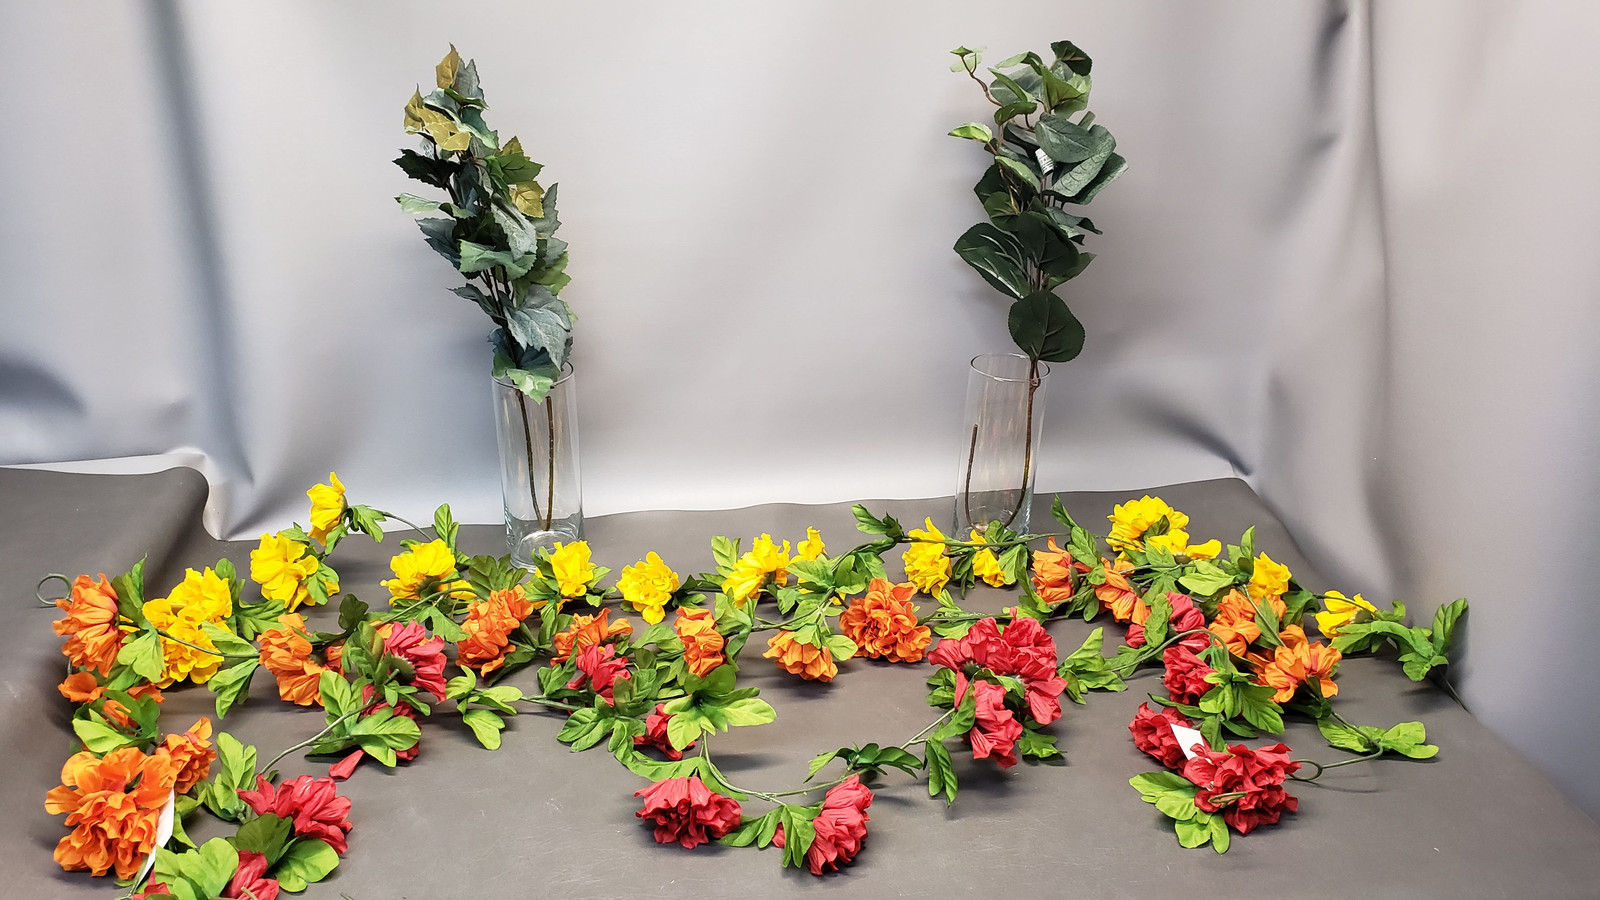 Floral United States Dealers Discount Crafts Florals